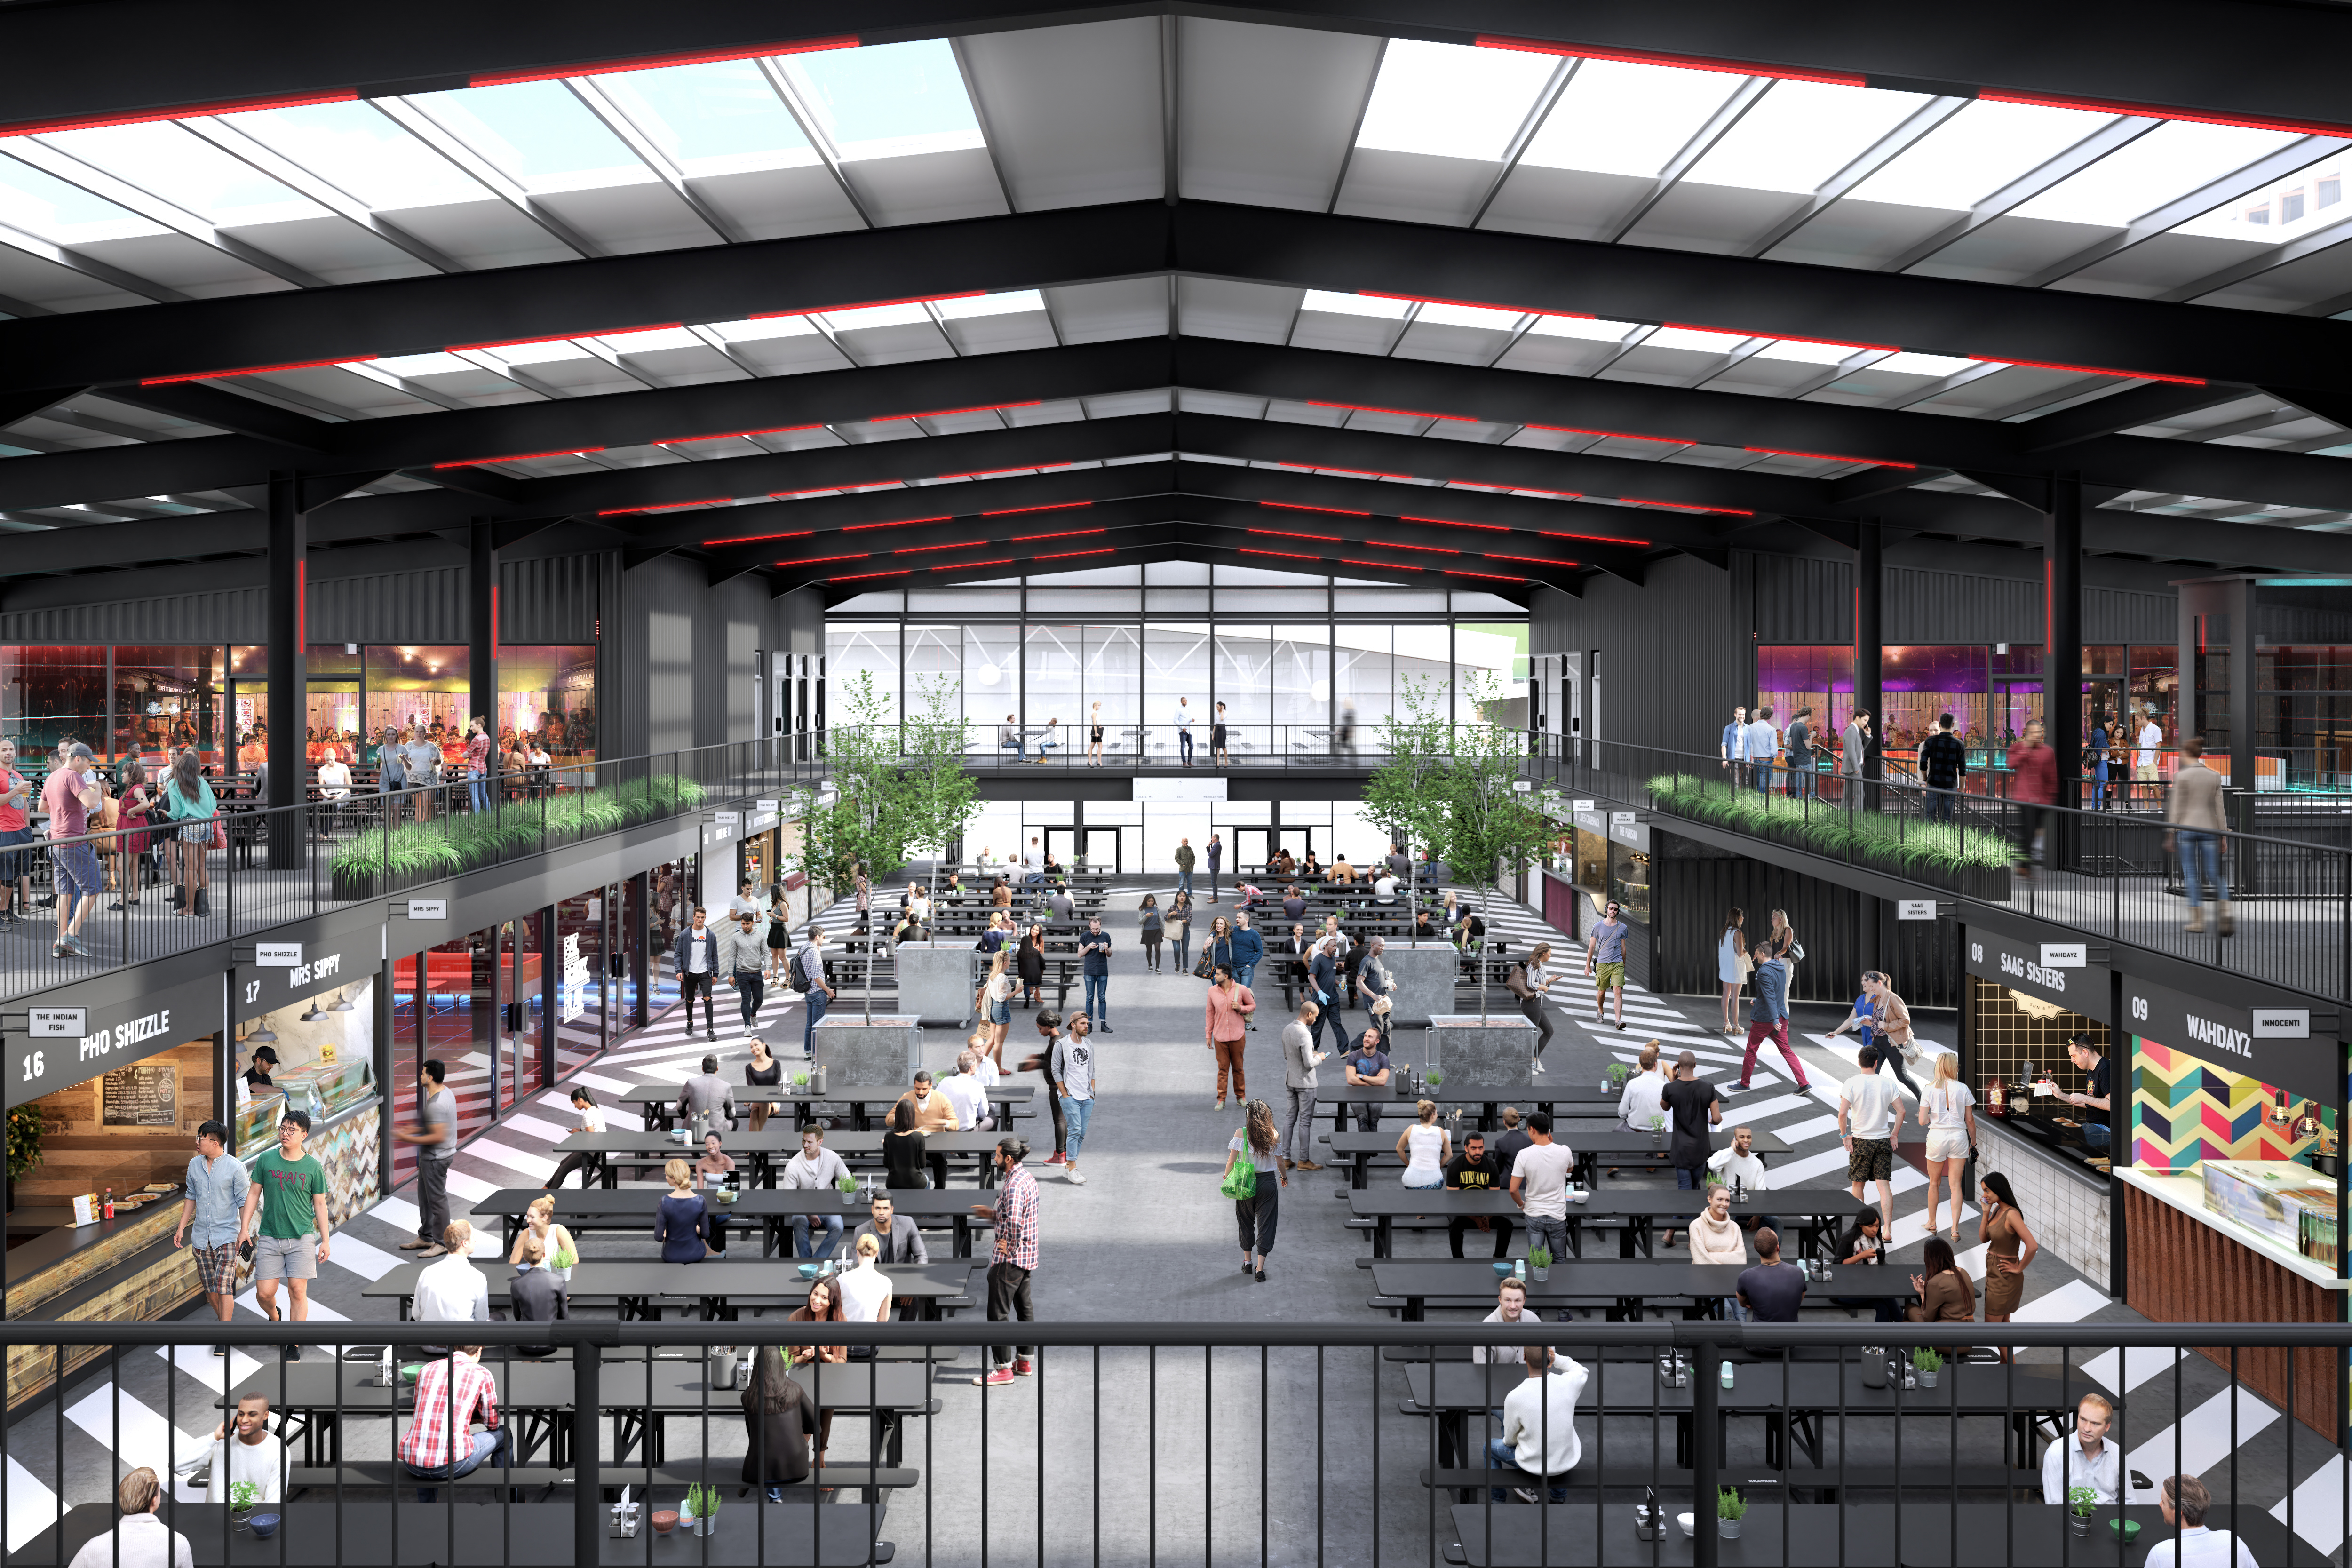 Boxpark Wembley has announced its street food restaurants going into shipping containers, following Boxpark Shoreditch and Boxpark Croydon